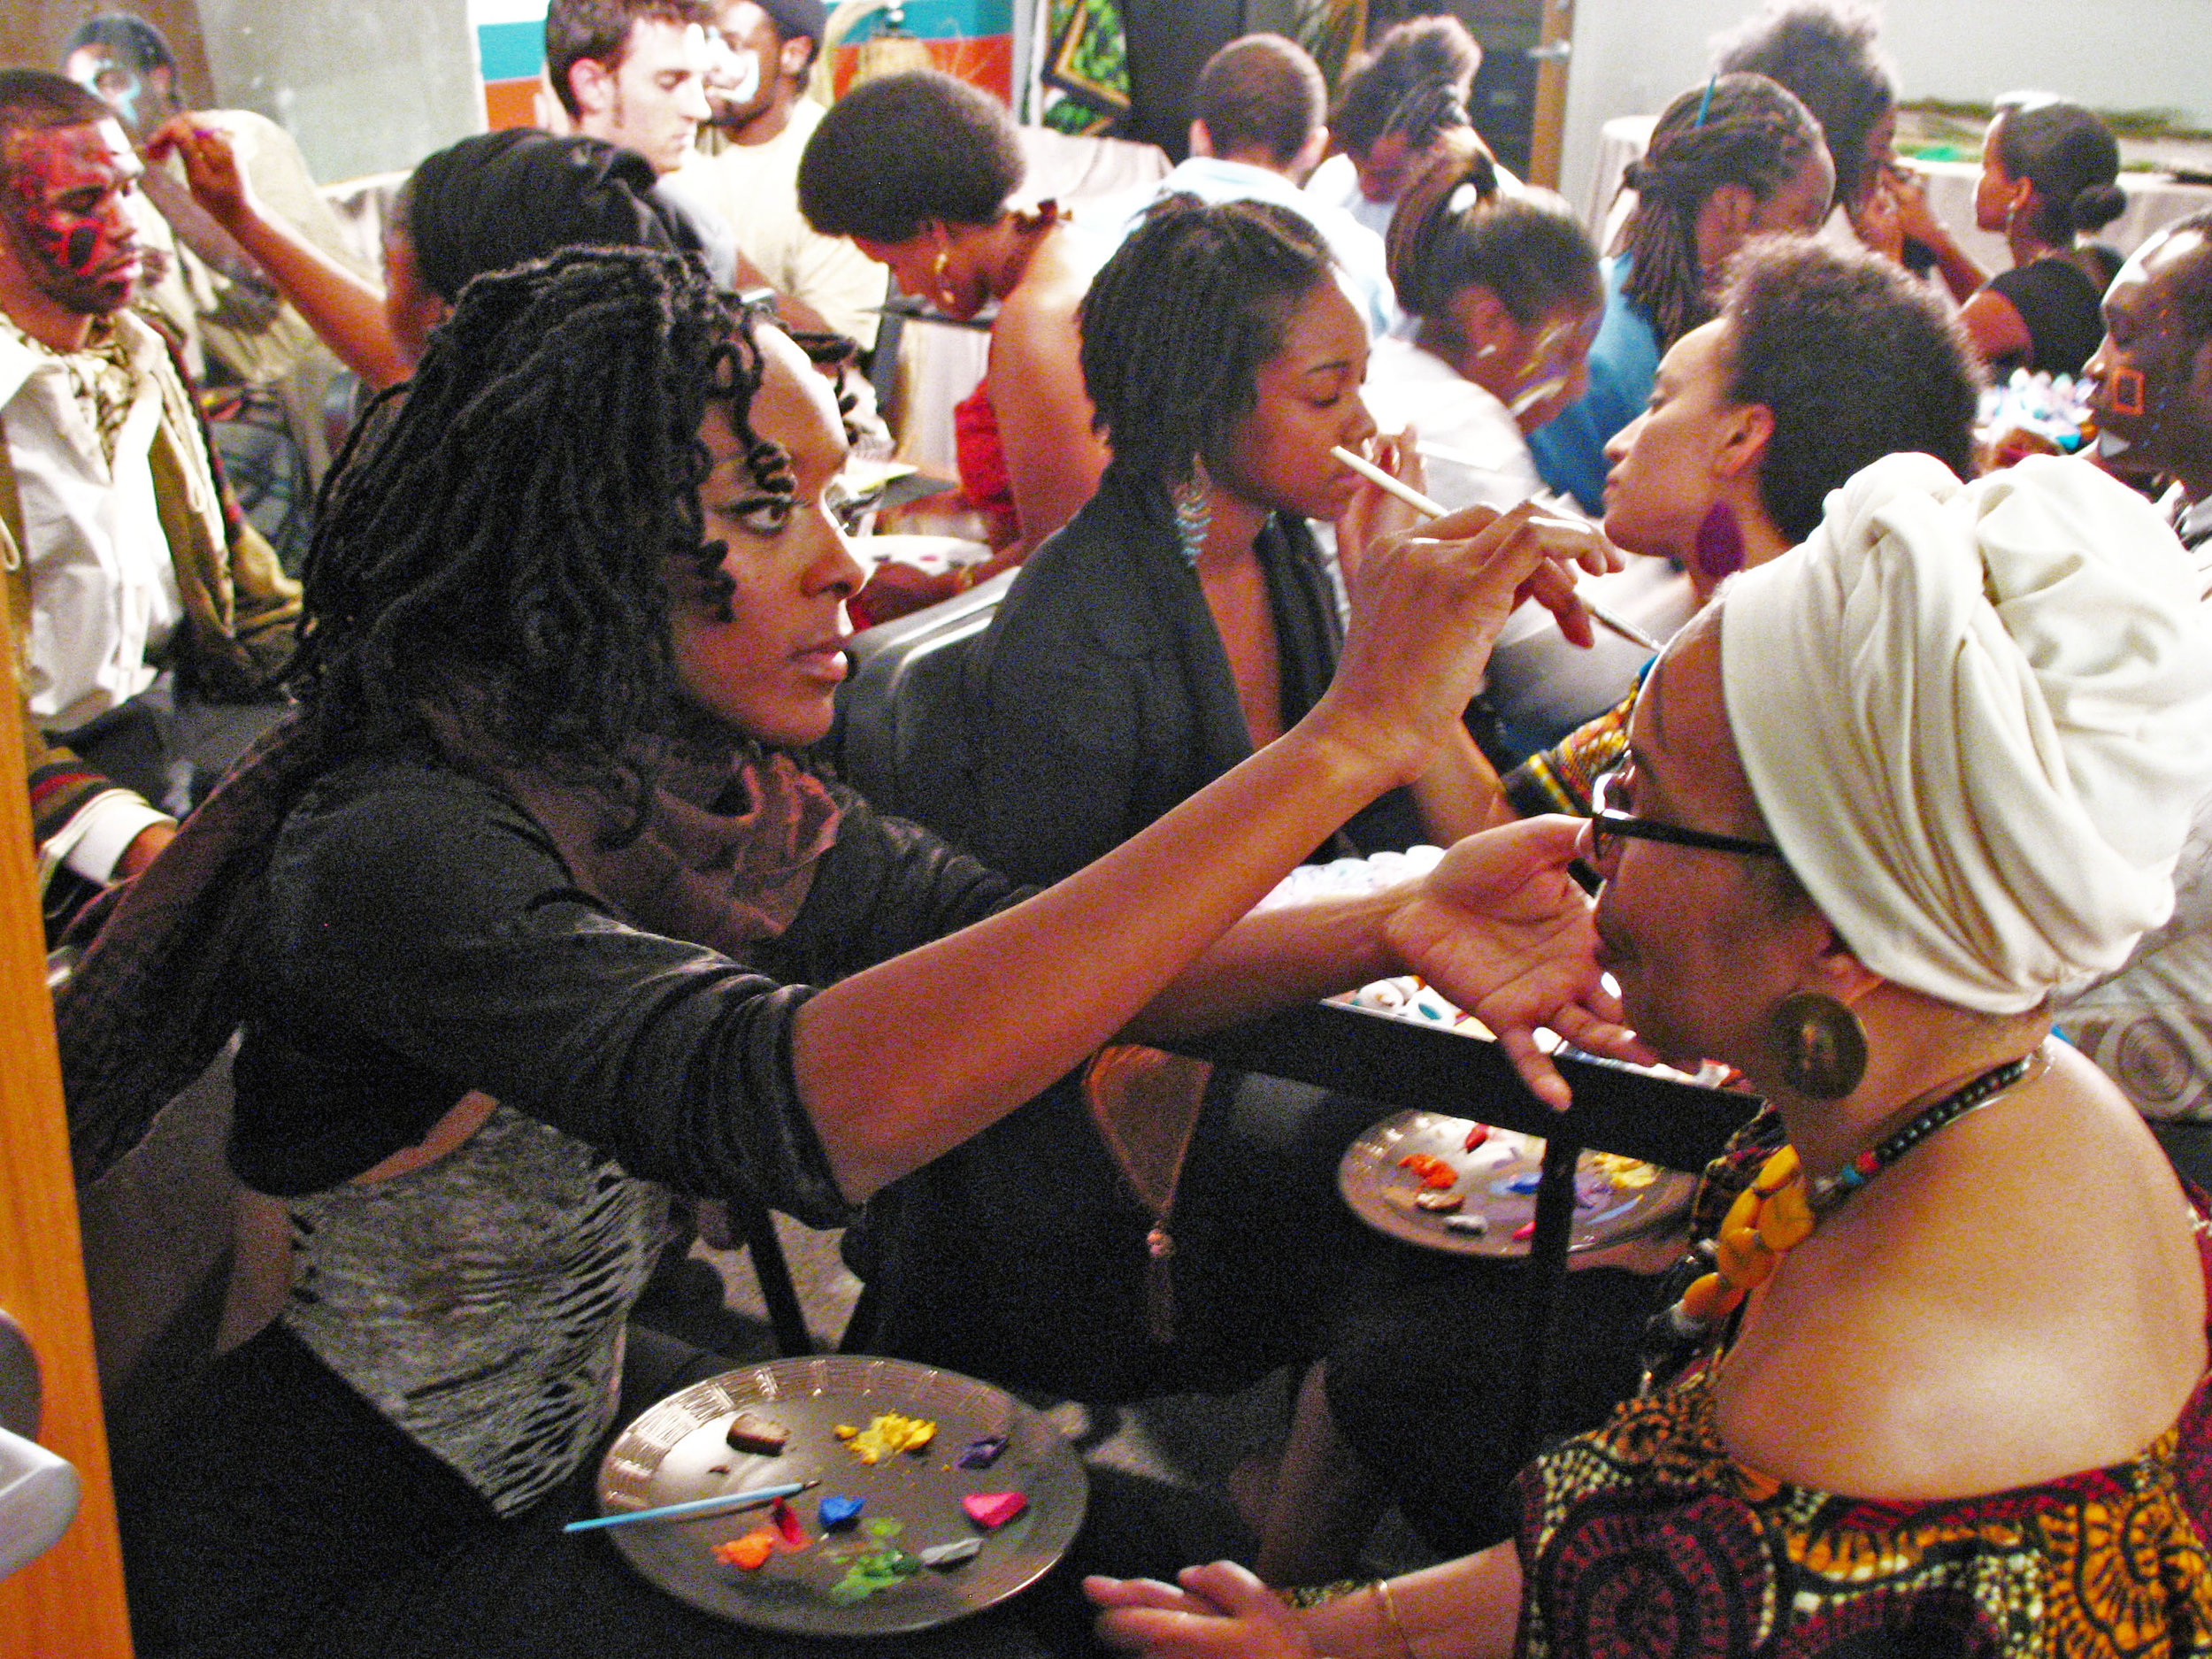 The MassQuerade Ball is a community ritual designed to facilitate connection.   Human-to-Human connection  is forged between participants through touch and eye contact in a face-painting ritual.   Human-to-Humanity connection  is fostered through examining just how pervasive the masking ritual is in populations around the globe.